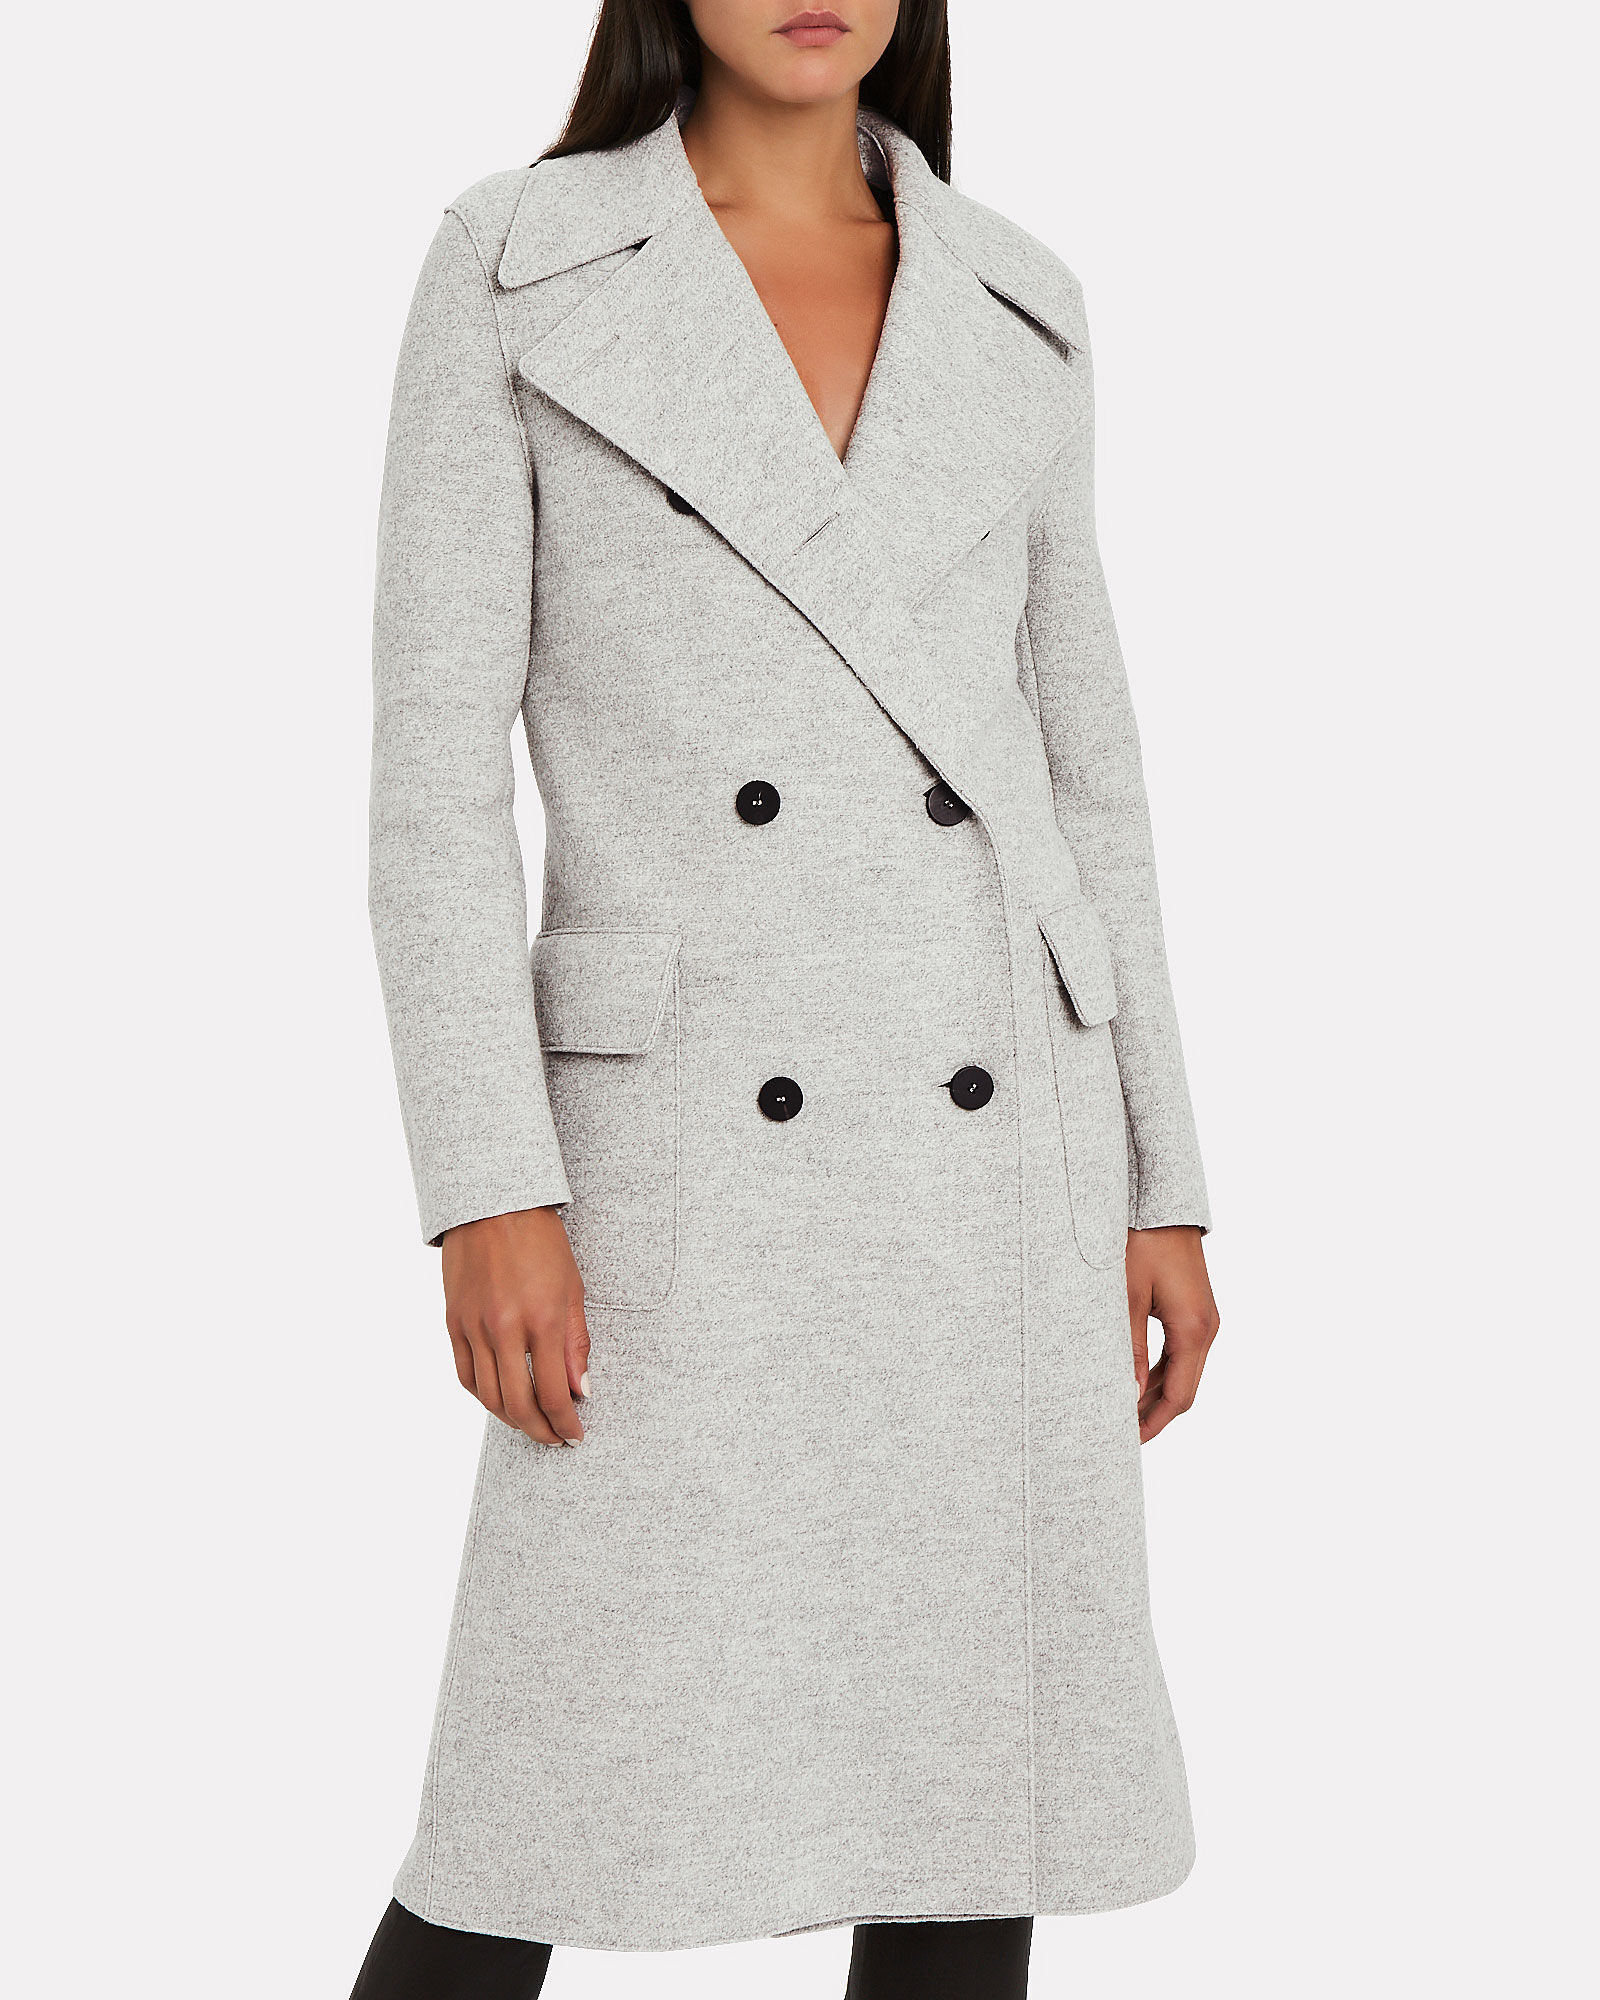 Boiled Wool Double Breasted Military Coat, GREY, hi-res